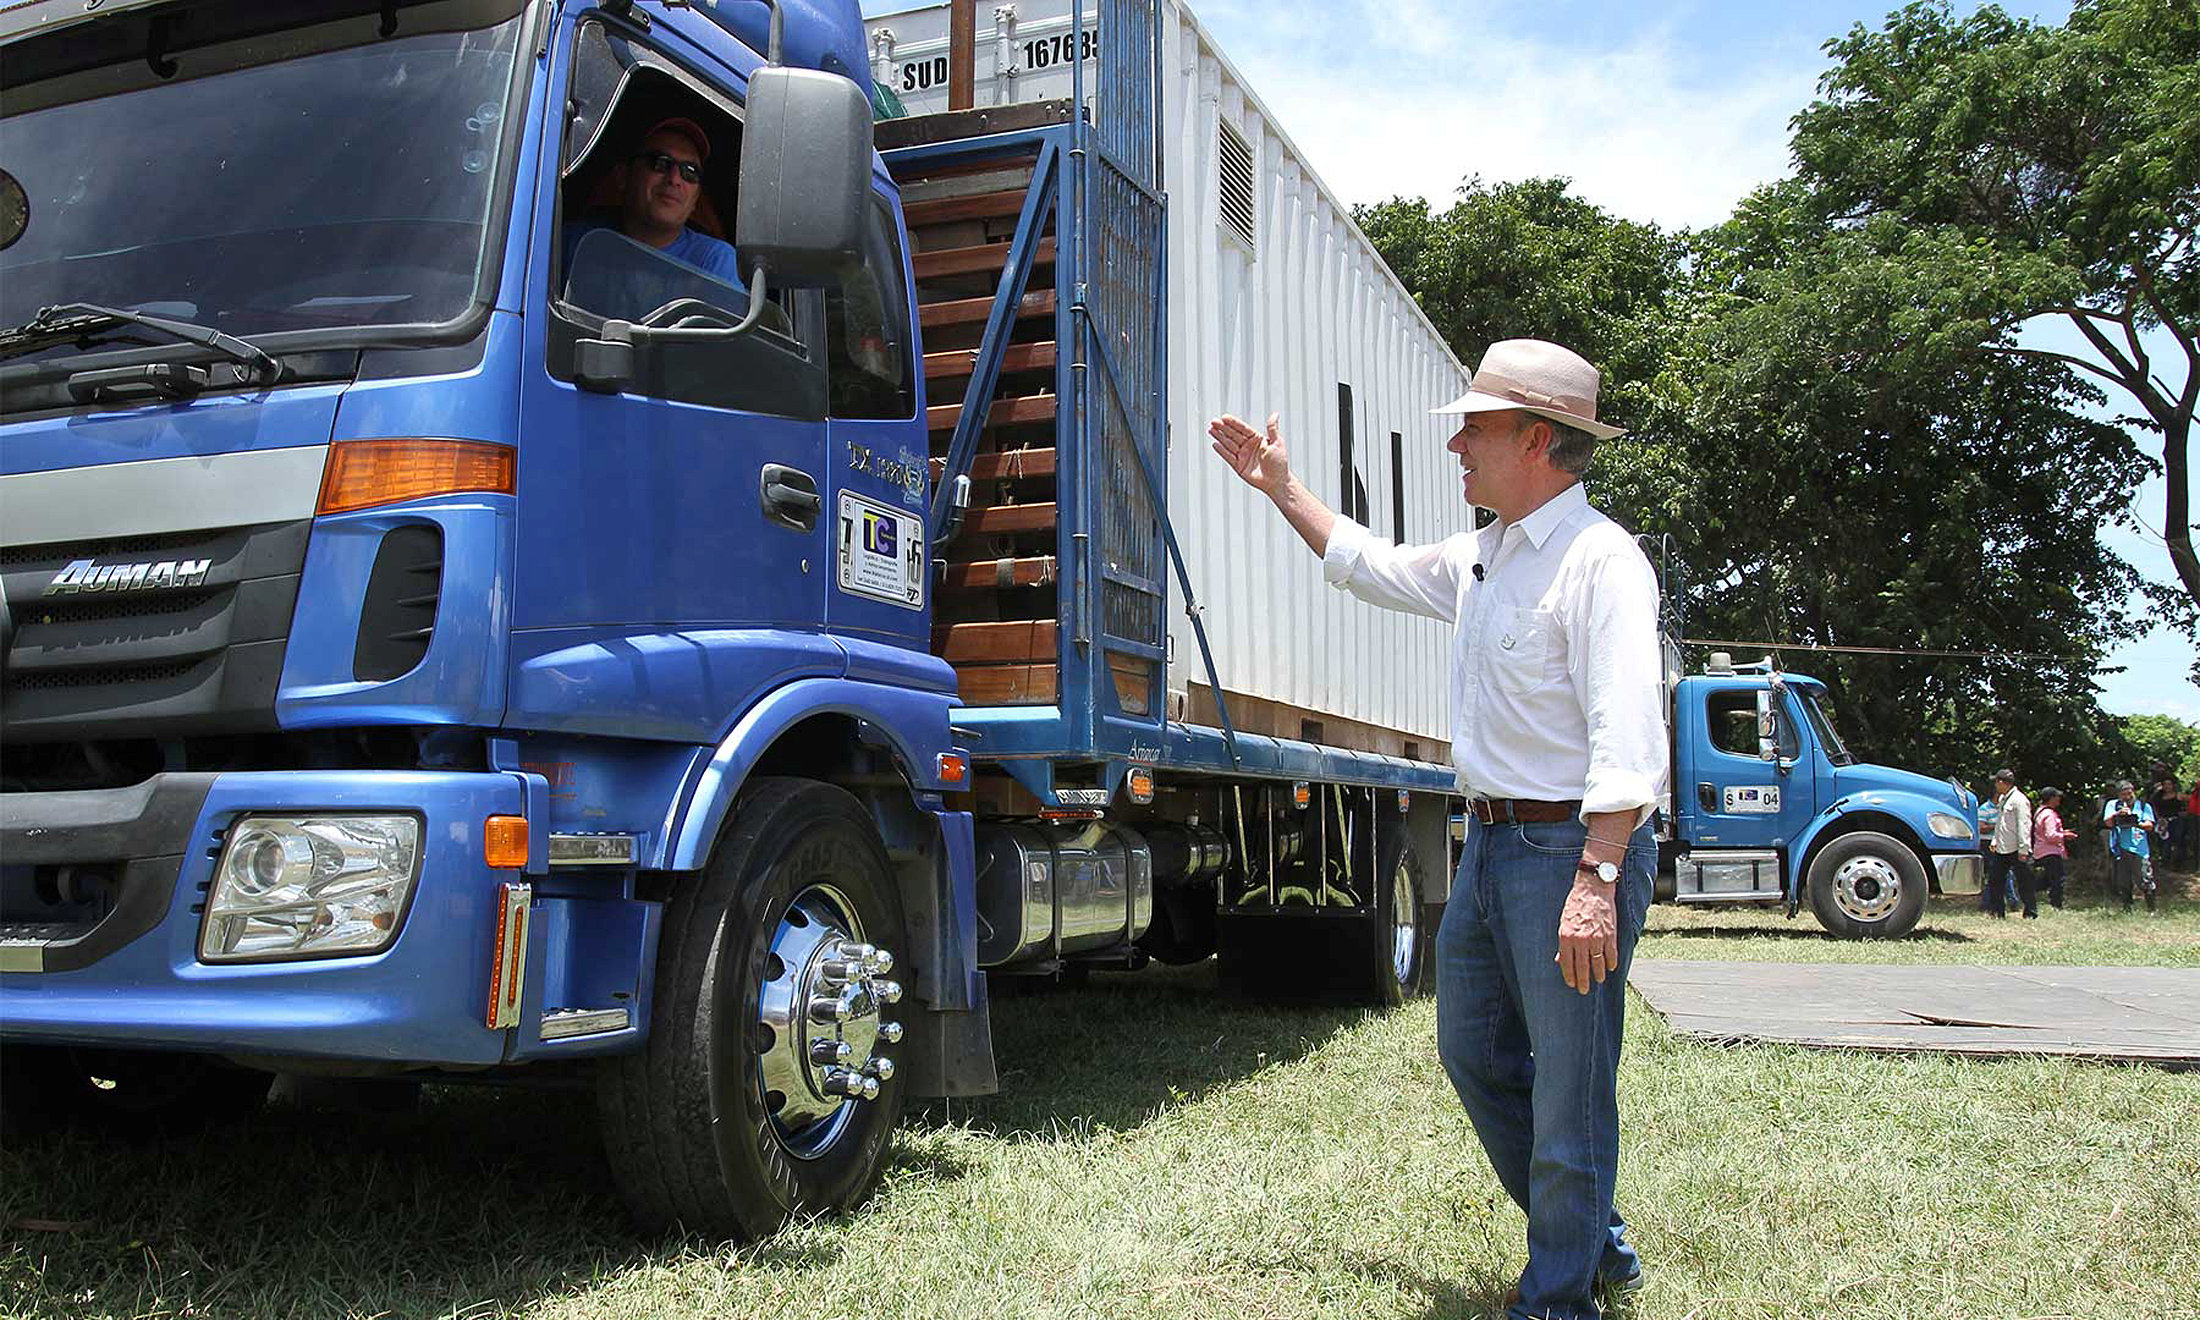 Colombia's President Juan Manuel Santos greets a driver carrying the last container with surrendered weapons delivered by FARC rebels to a UN observer in La Guajira, Colombia August 15, 2017. Colombian Presidency/Handout via REUTERS